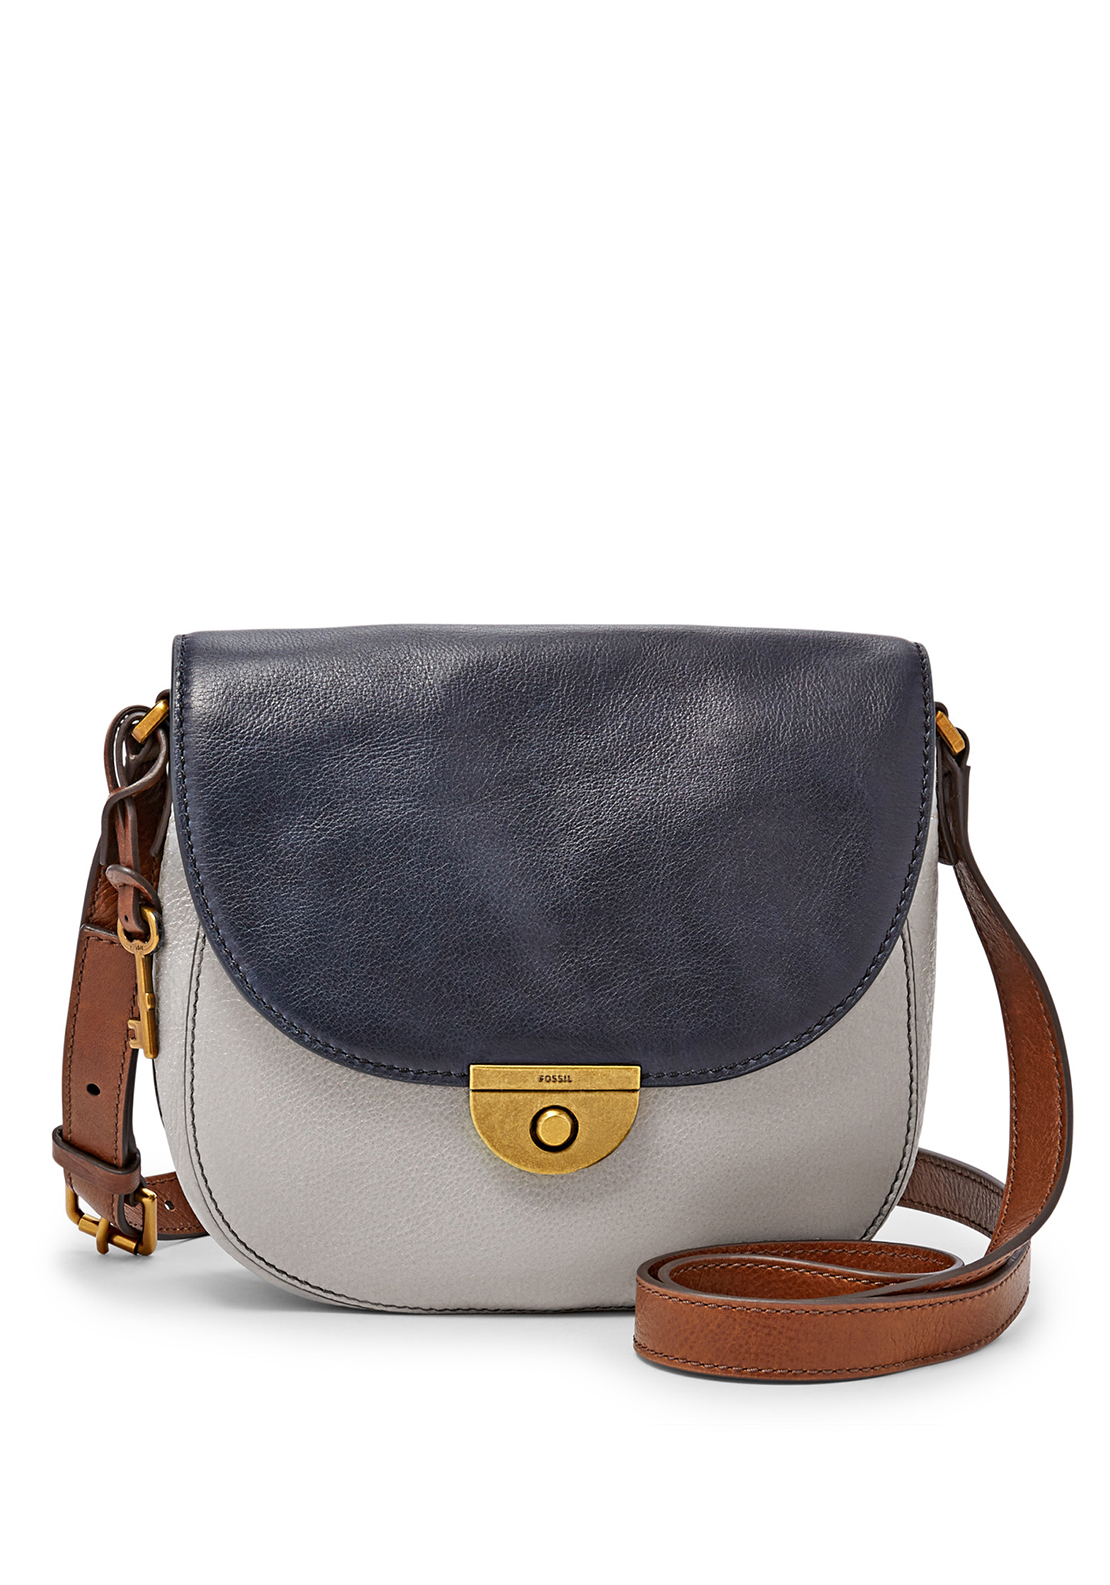 Fossil Emi Leather Saddle Crossbody Bag, Iron